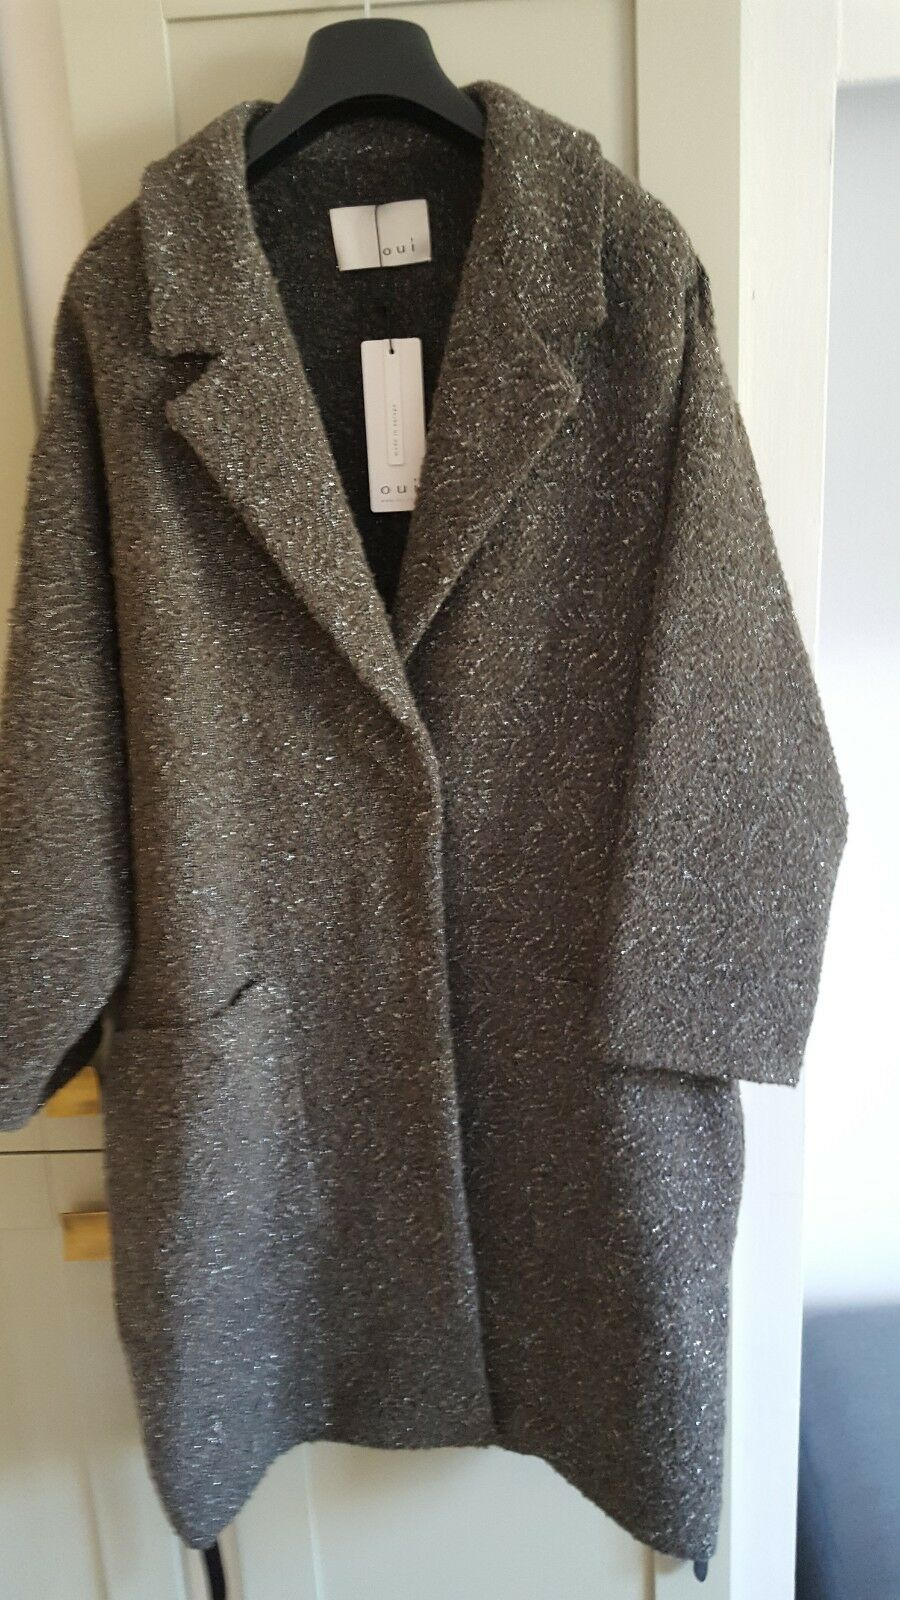 DESIGNER COAT Oui John Lewis brown Oversized Coat Size 16 BNWT RRP